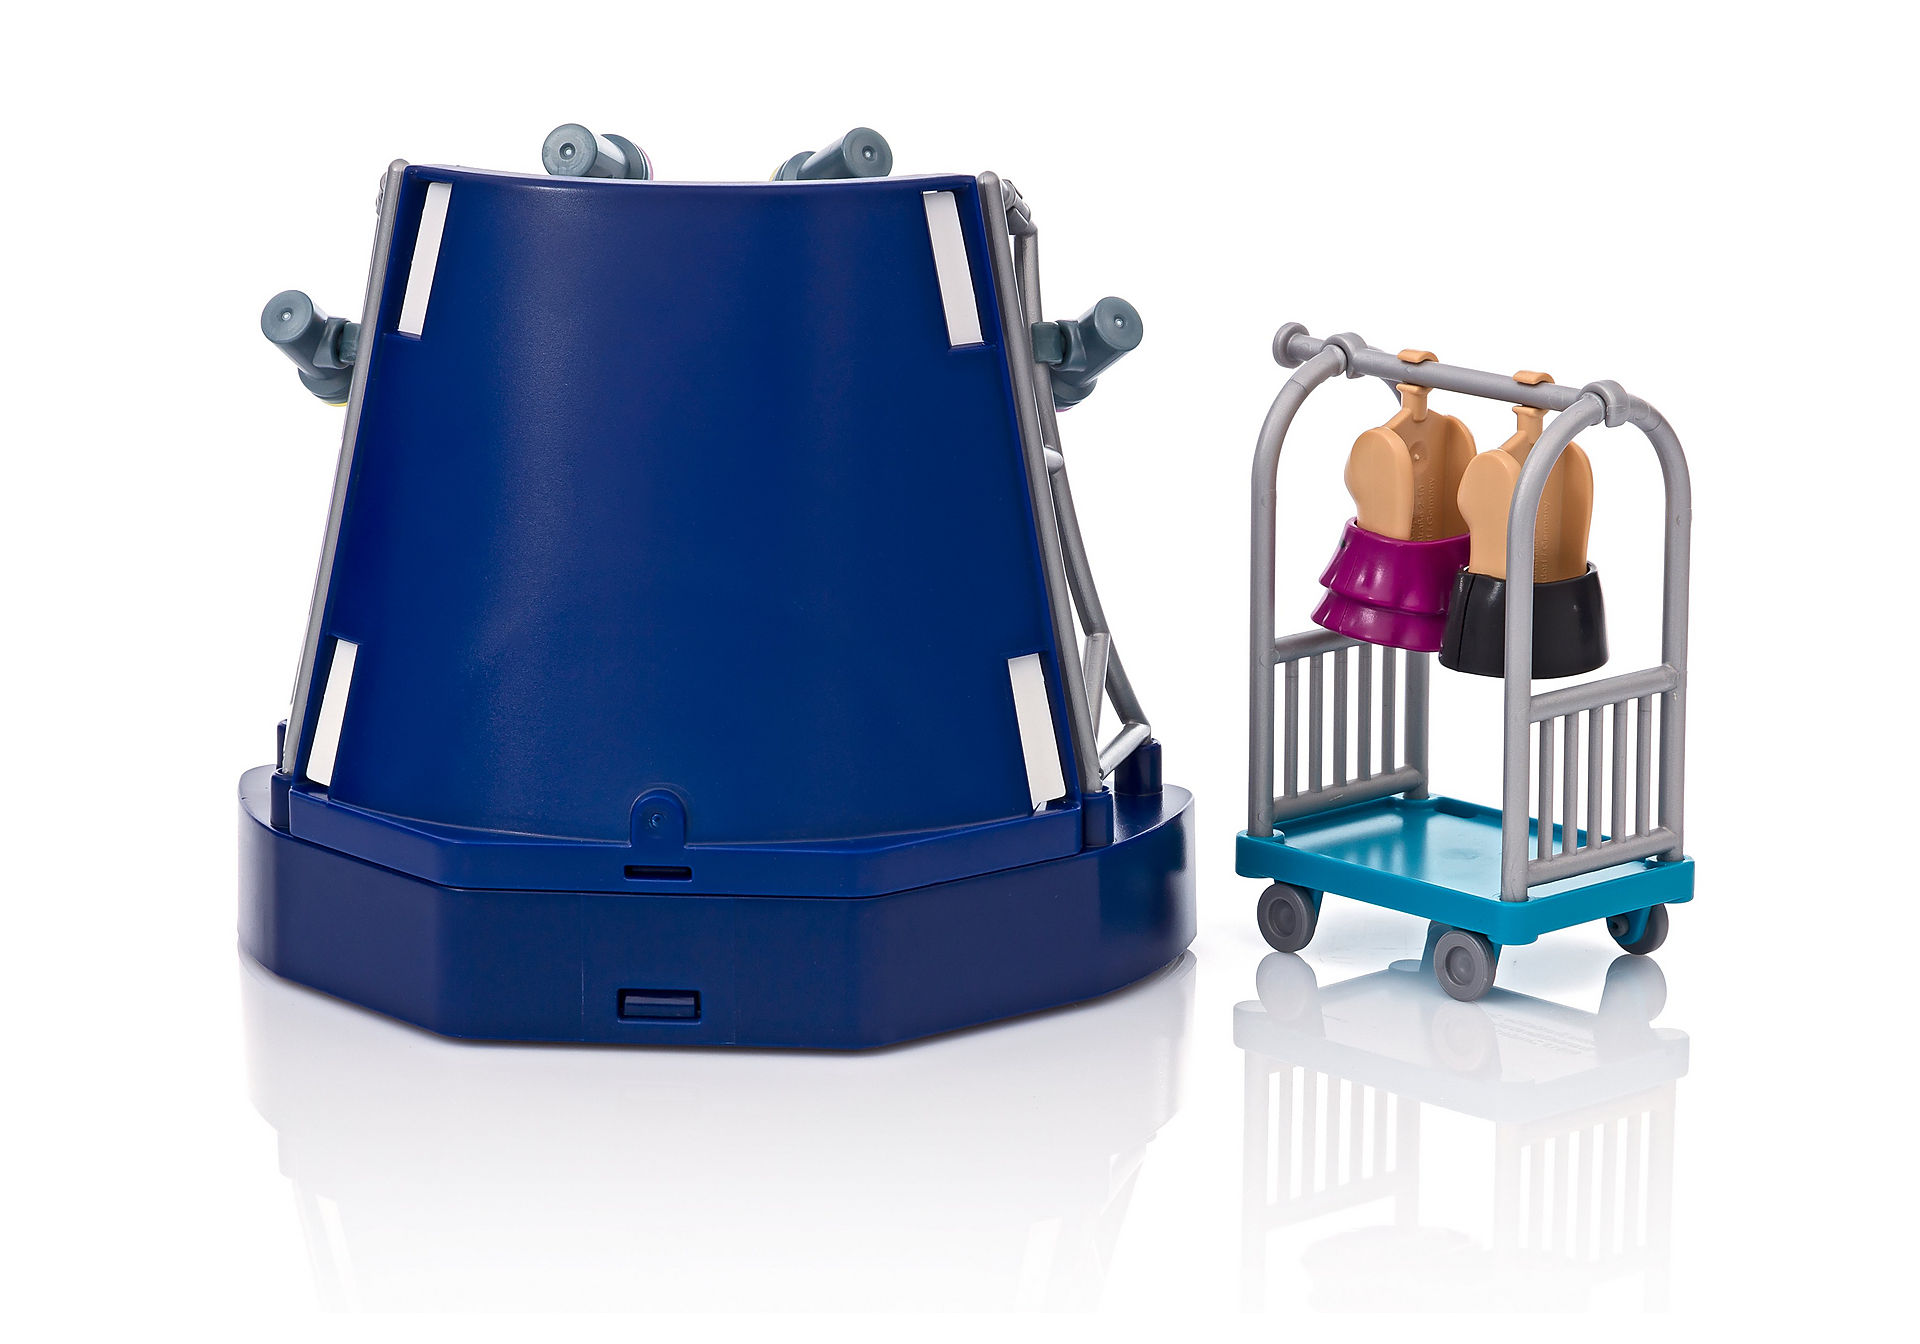 360degree image 22